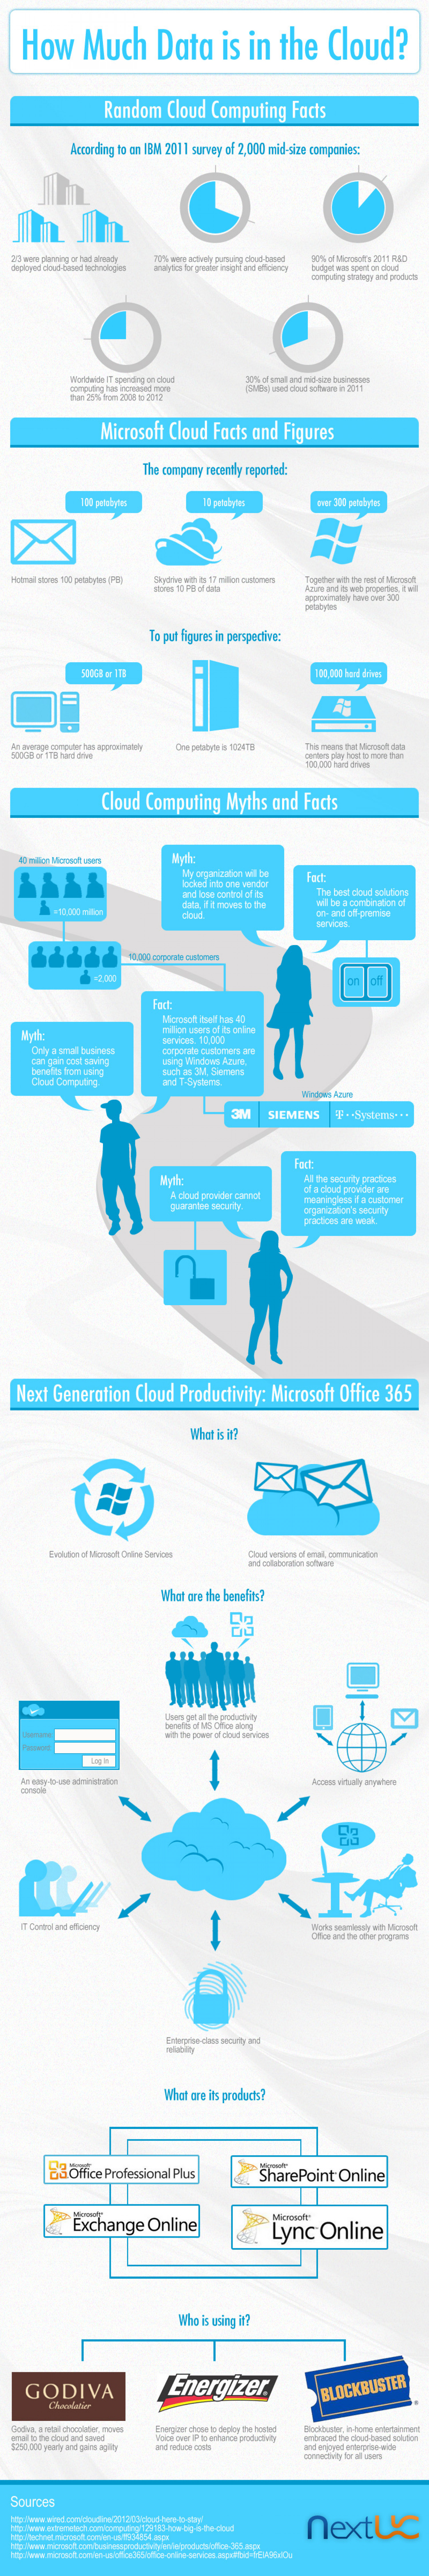 Cloud Computing Facts Infographic